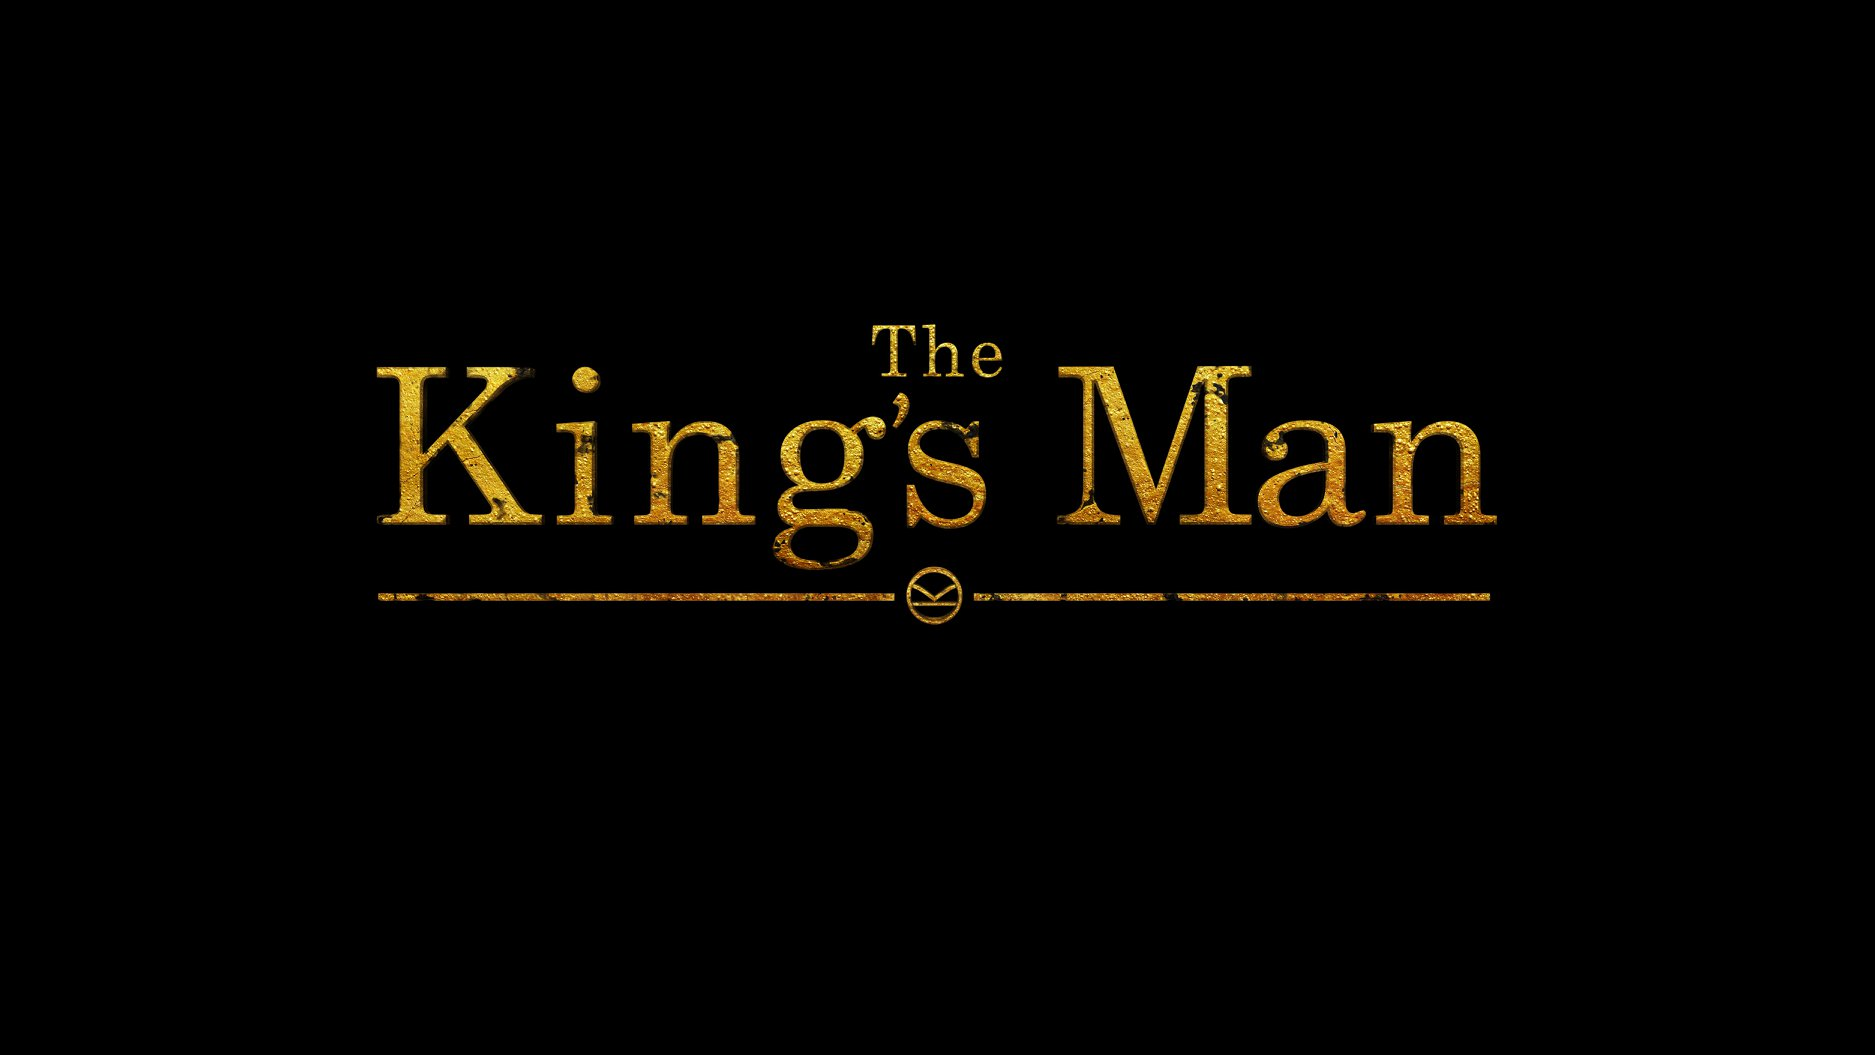 The King's Man: Prequel to Kingsman